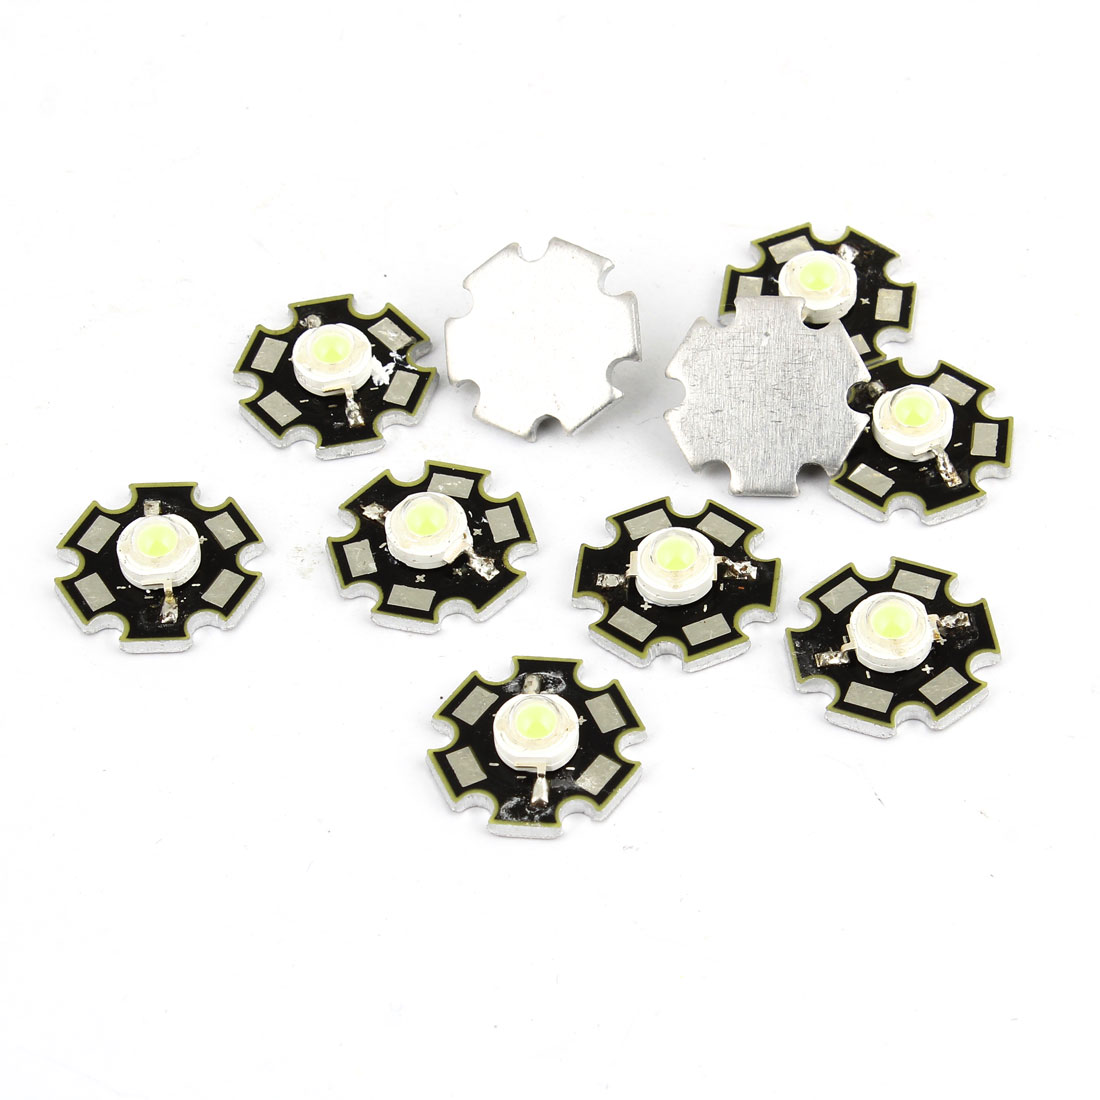 10 Pcs 3.5V White LED Emitter Metal Plate Lamp Light